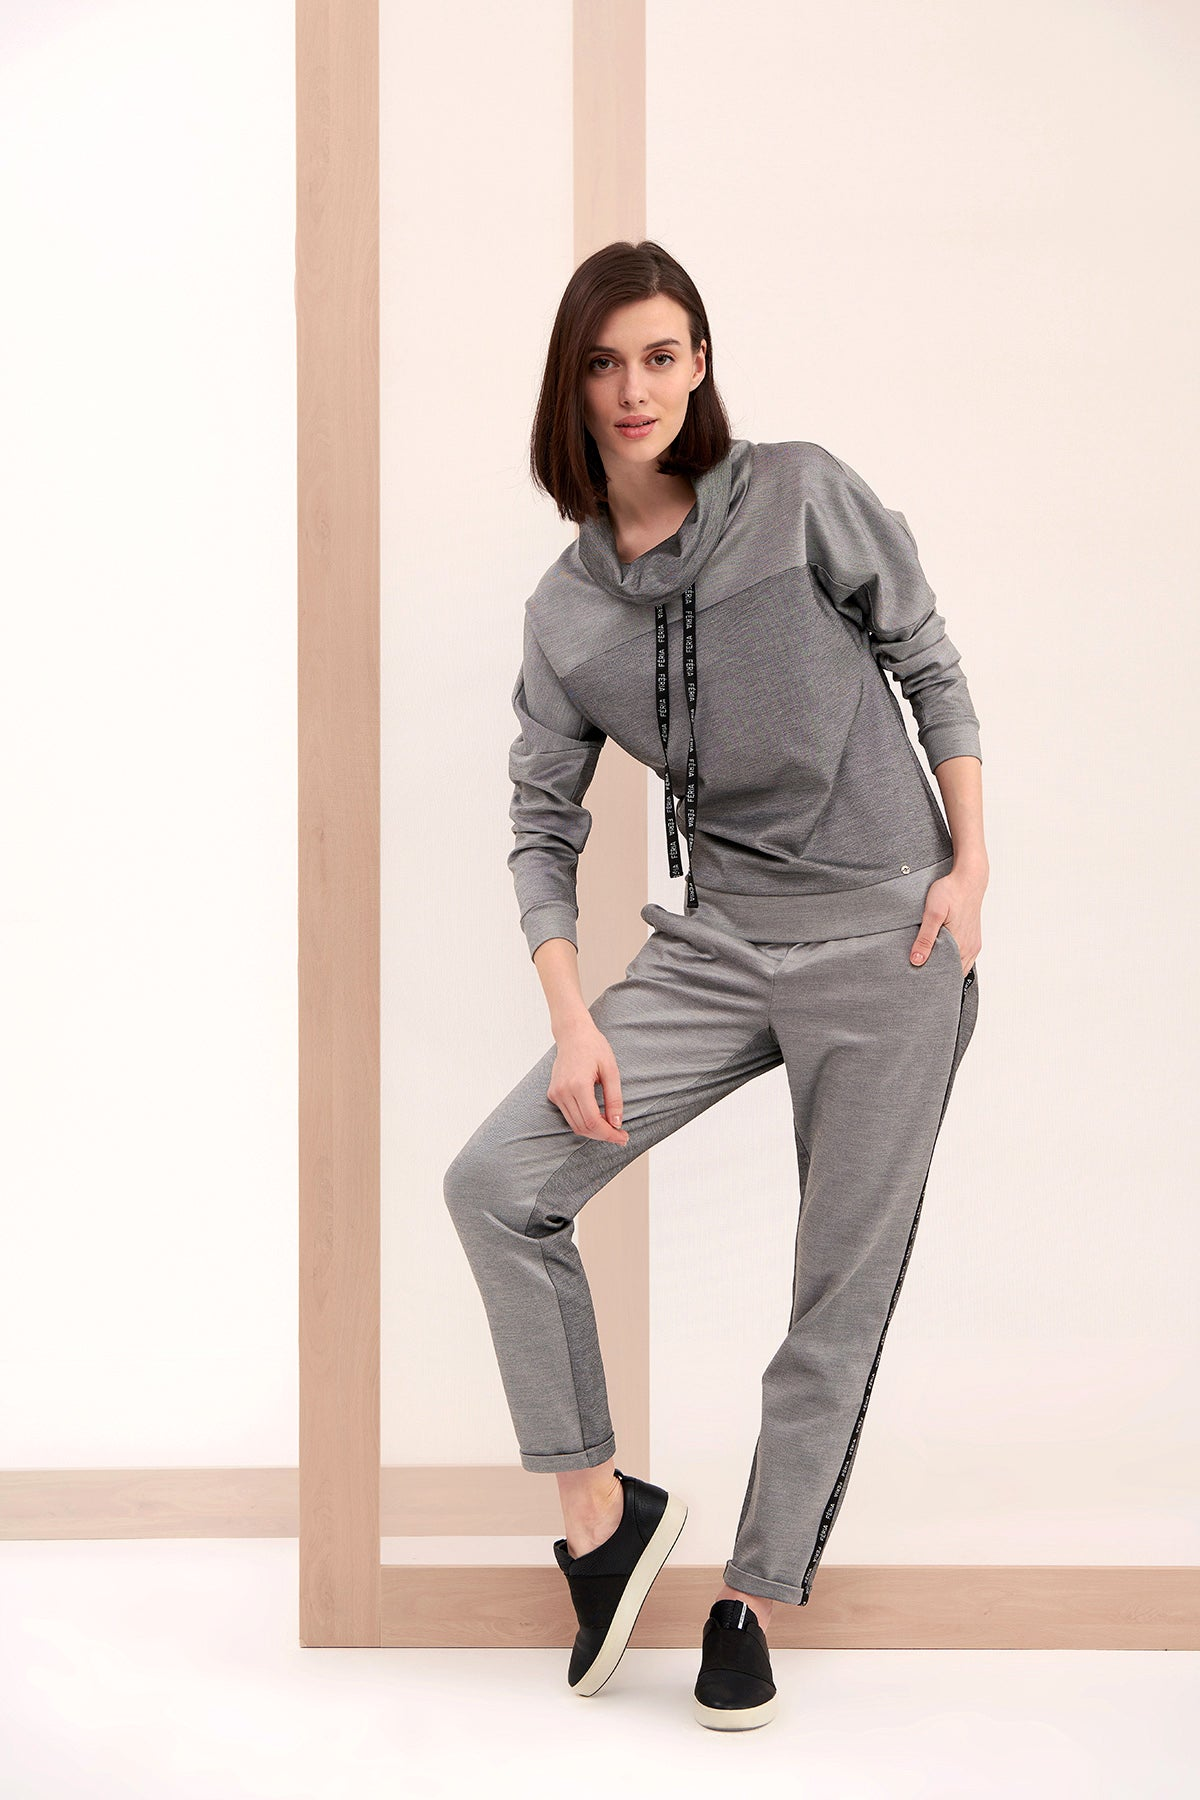 FE Sports Sweatpants